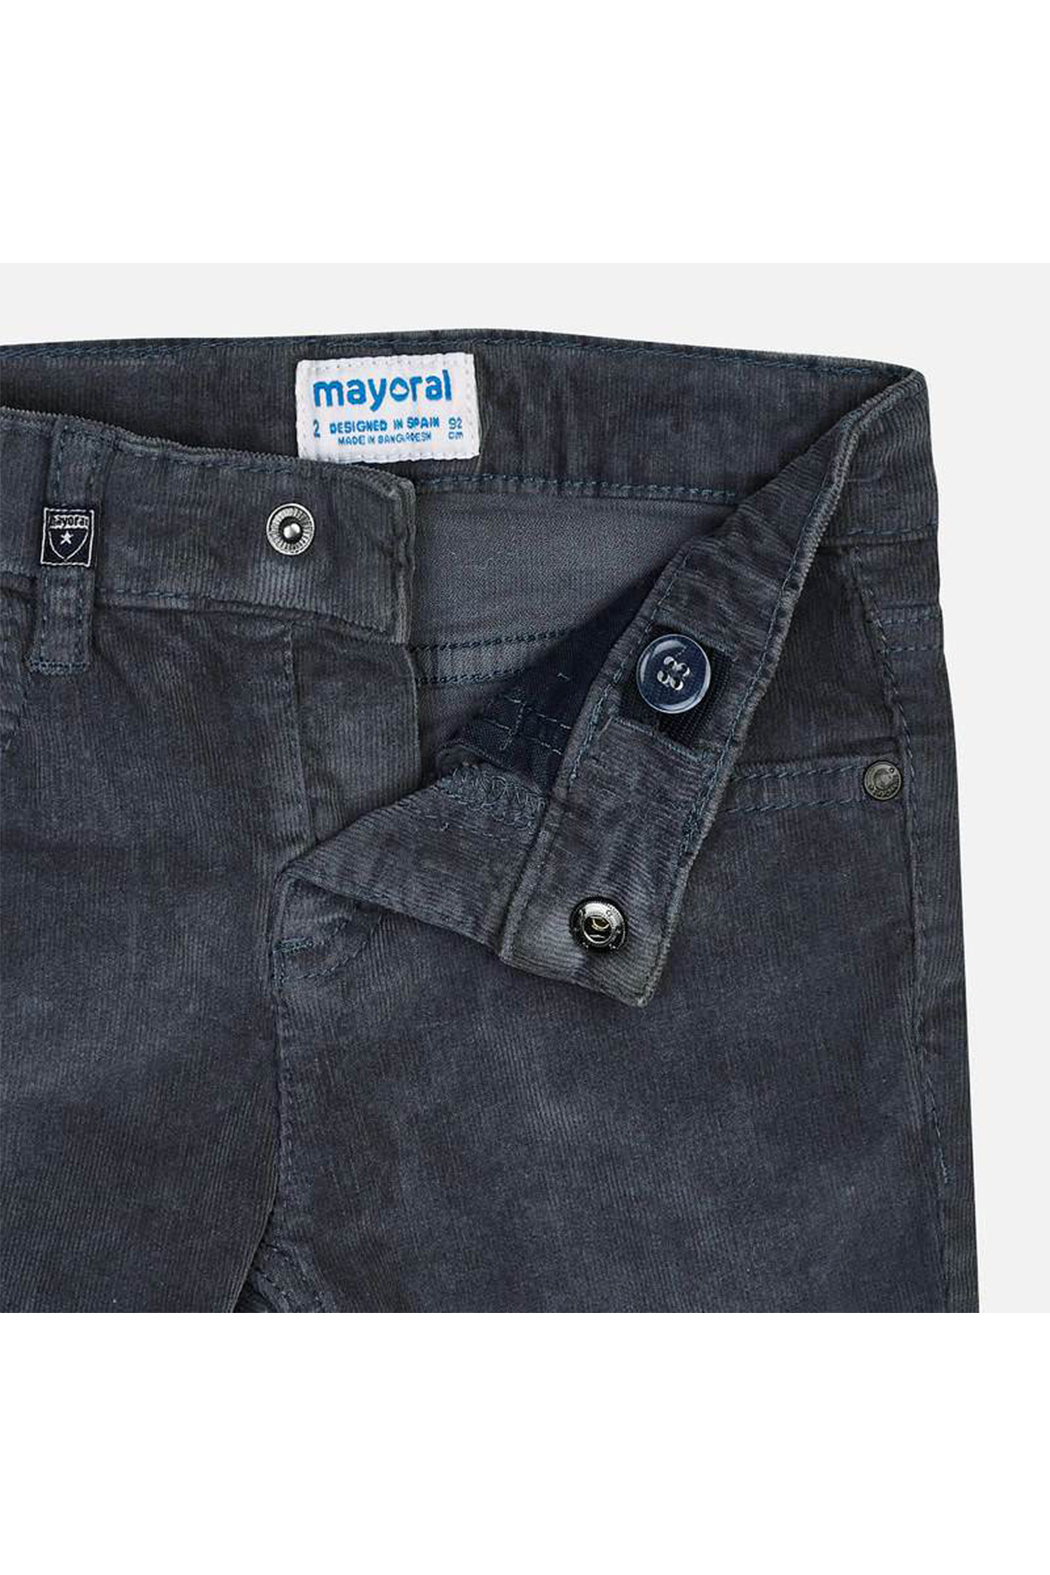 Mayoral Corduroy Pants - Side Cropped Image